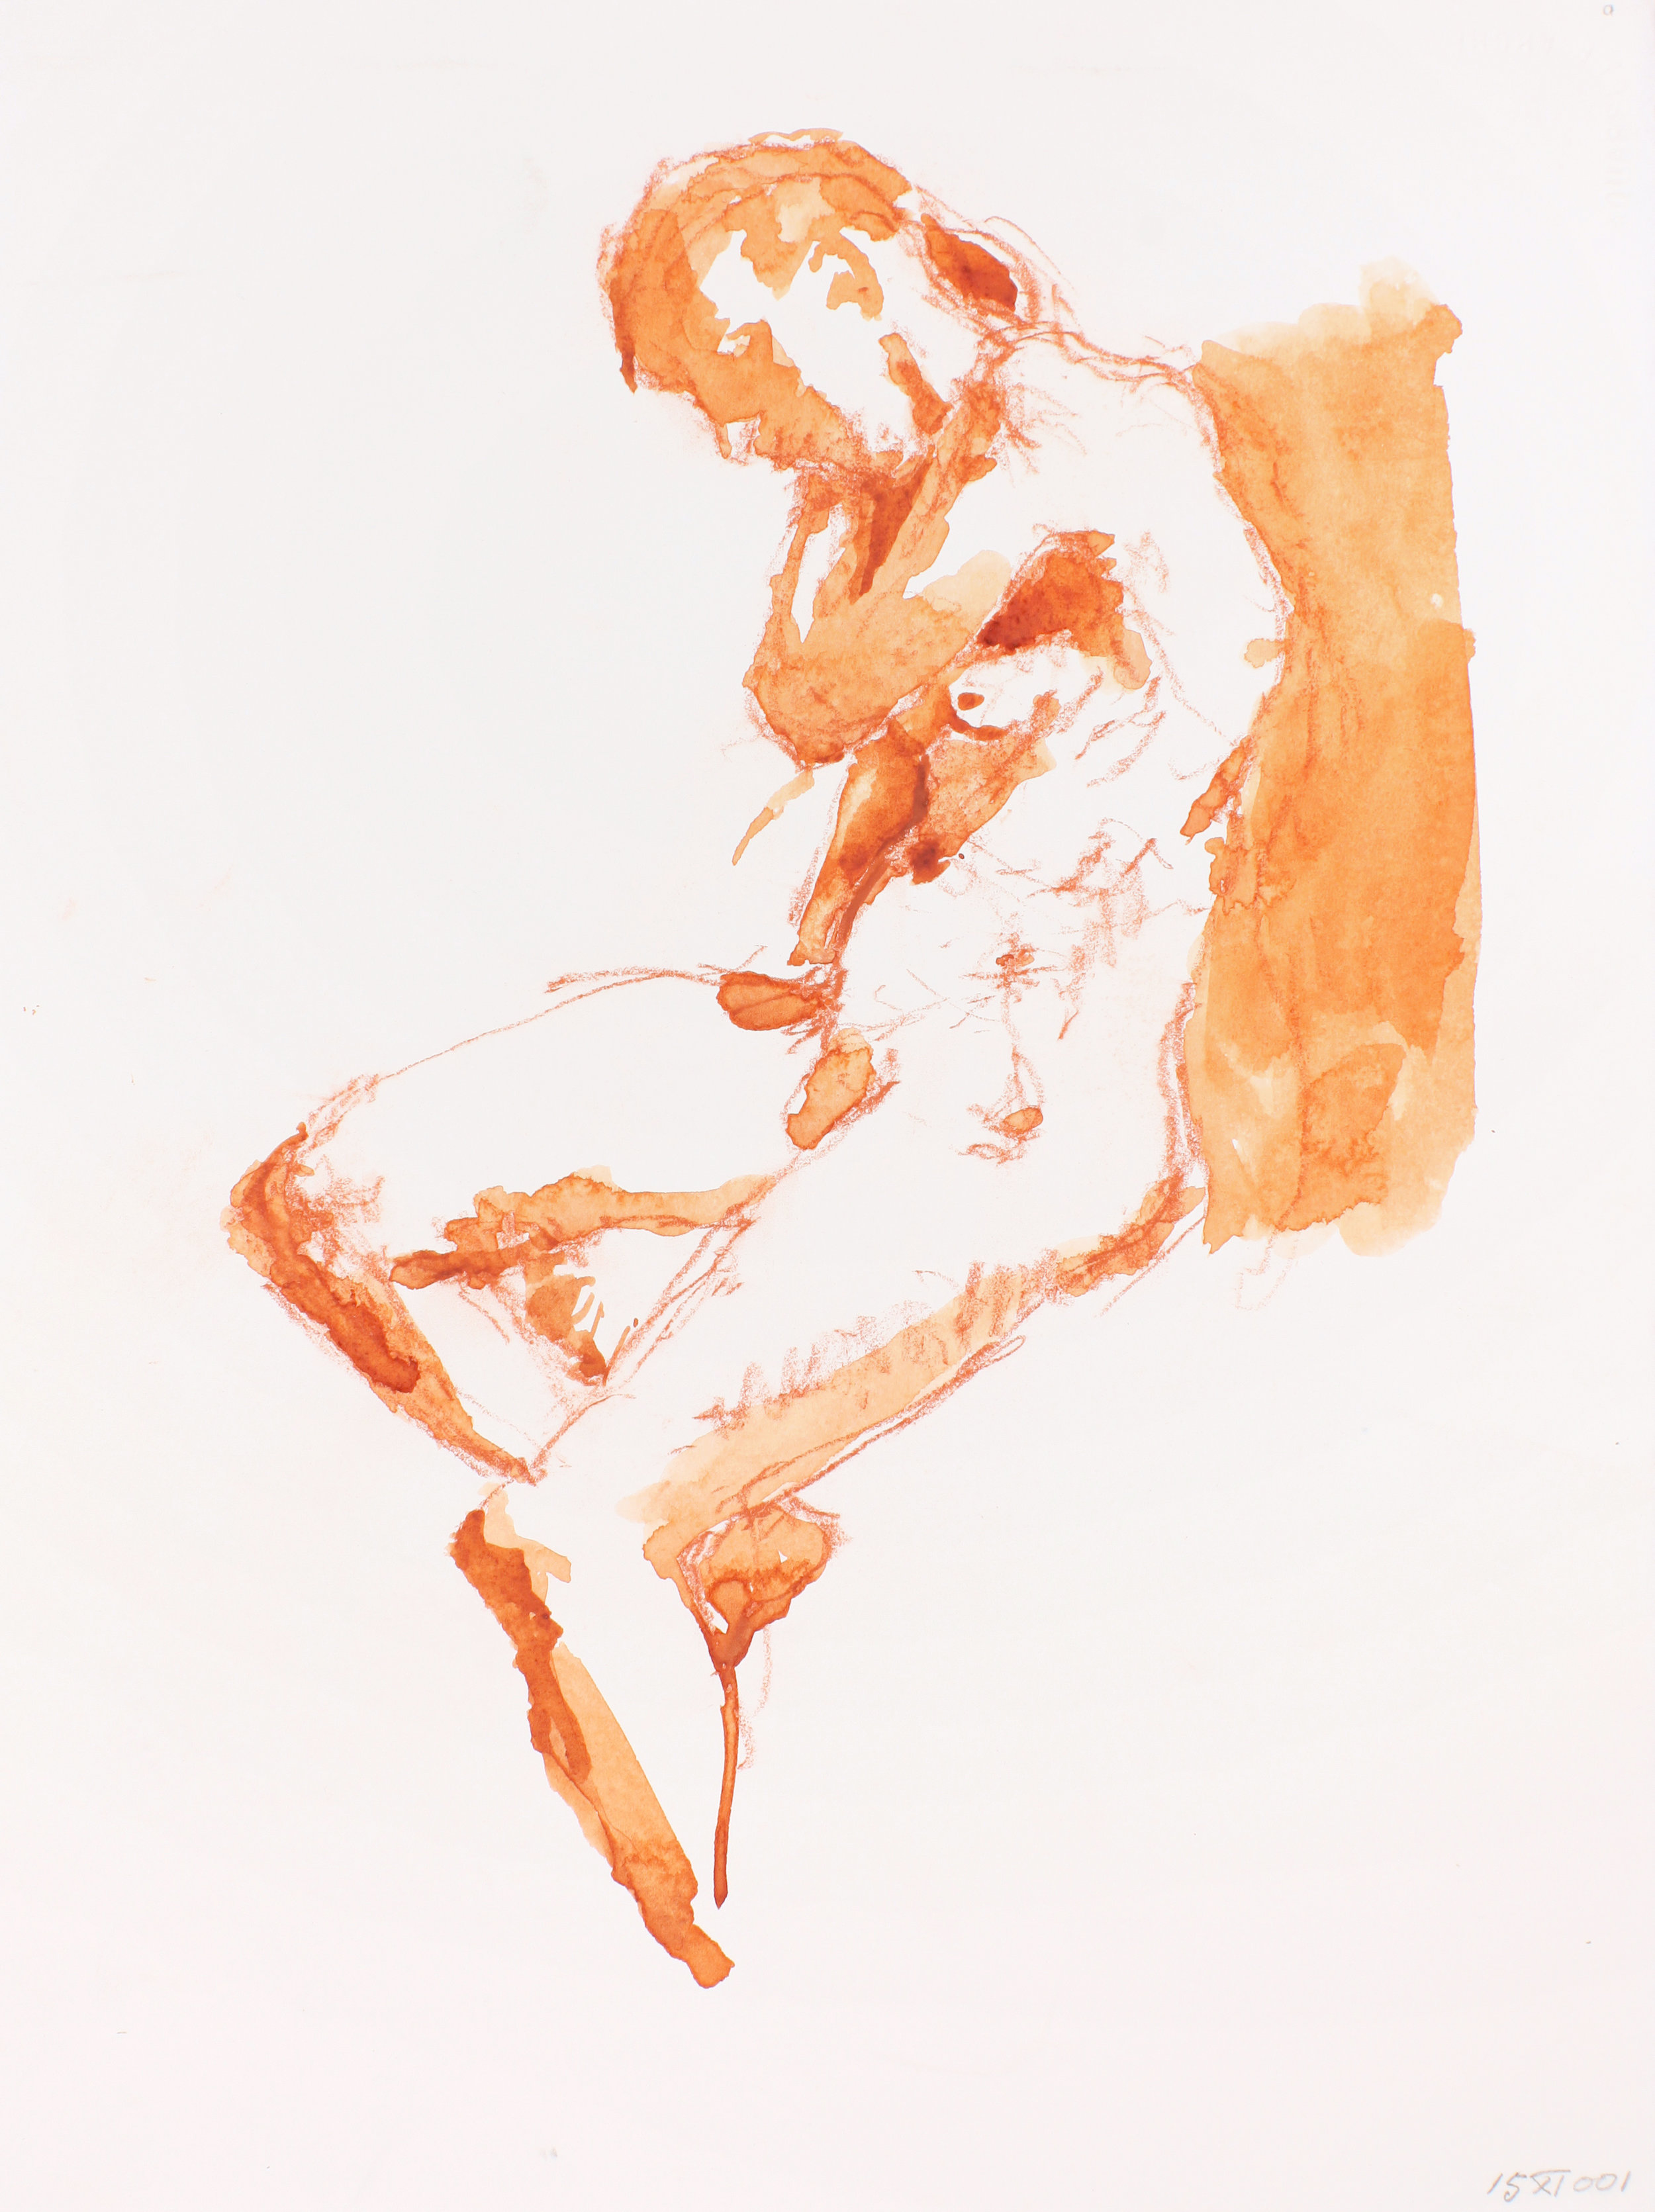 2001_Seated_Nude_with_Crossed_Arms_in_Profile_watercolour_and_red_conté_on_paper_15x11in_WPF198.jpg